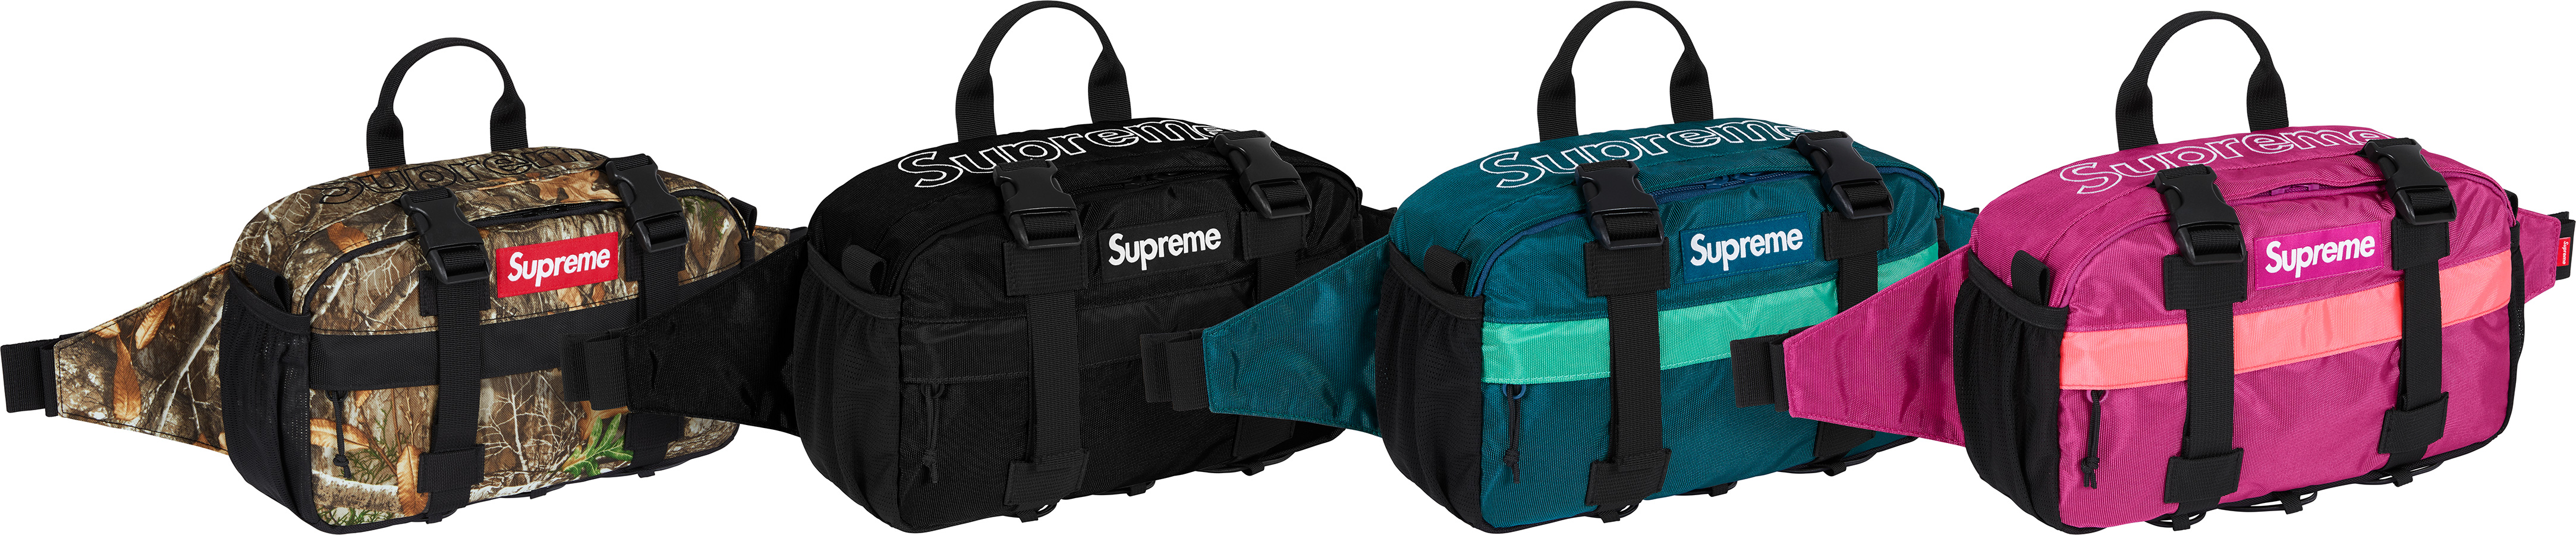 supreme-19aw-19fw-fall-winter-waist-bag